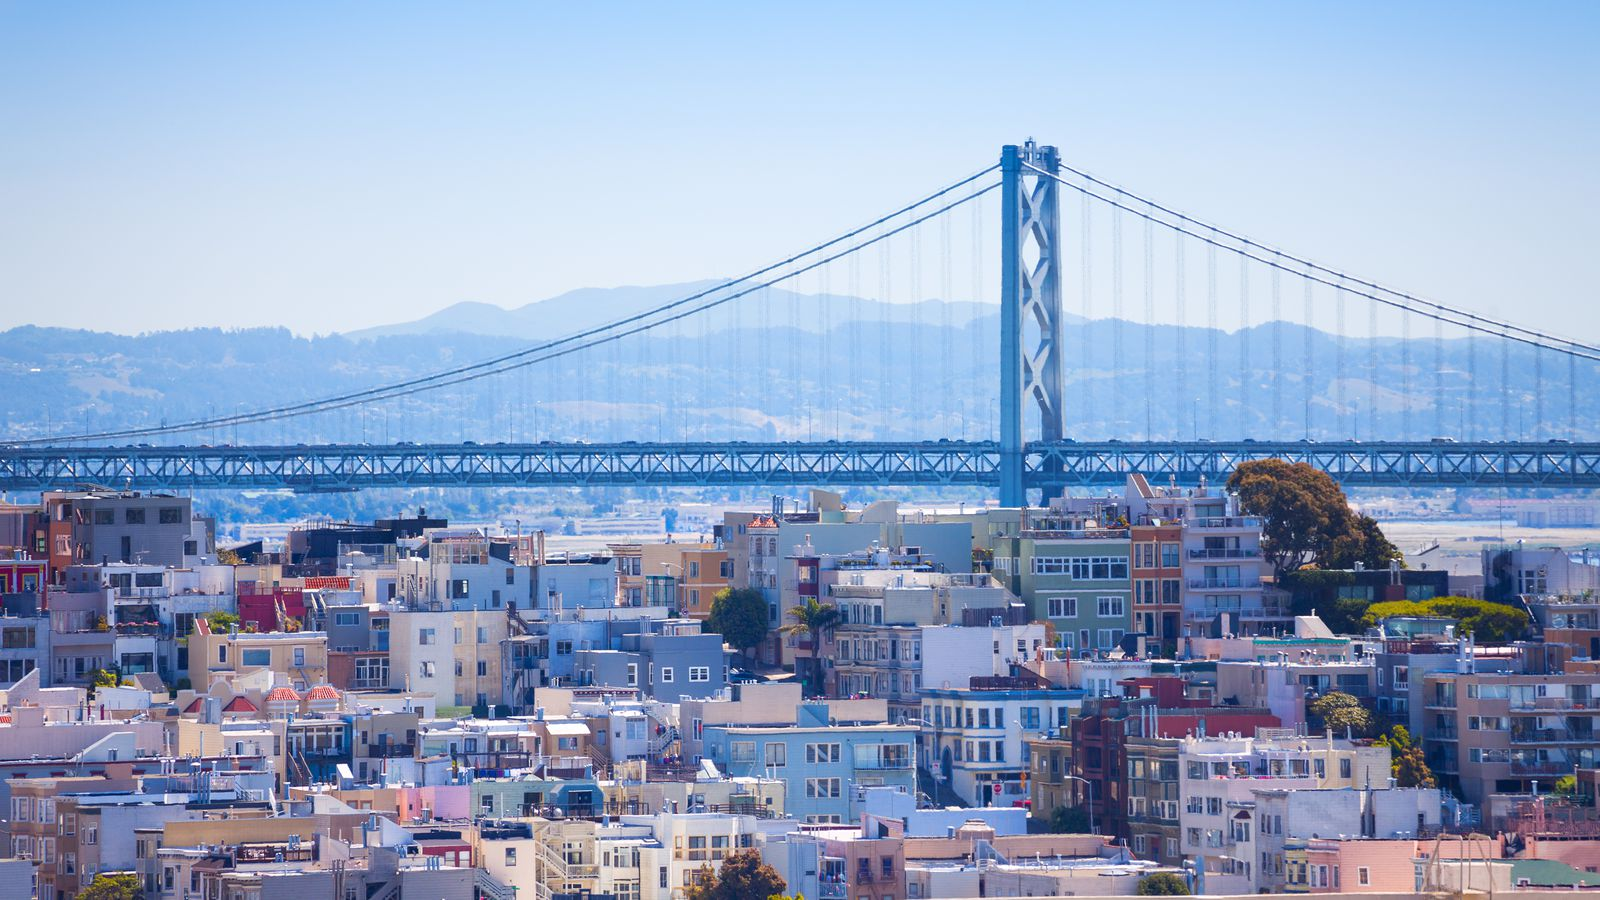 the gambling boom of san francisco Locate casinos near san francisco, california this guide has reviews on the top casinos near san francisco, californiaalso shown are the casino floor size in square feet and the miles from san francisco with drive time.